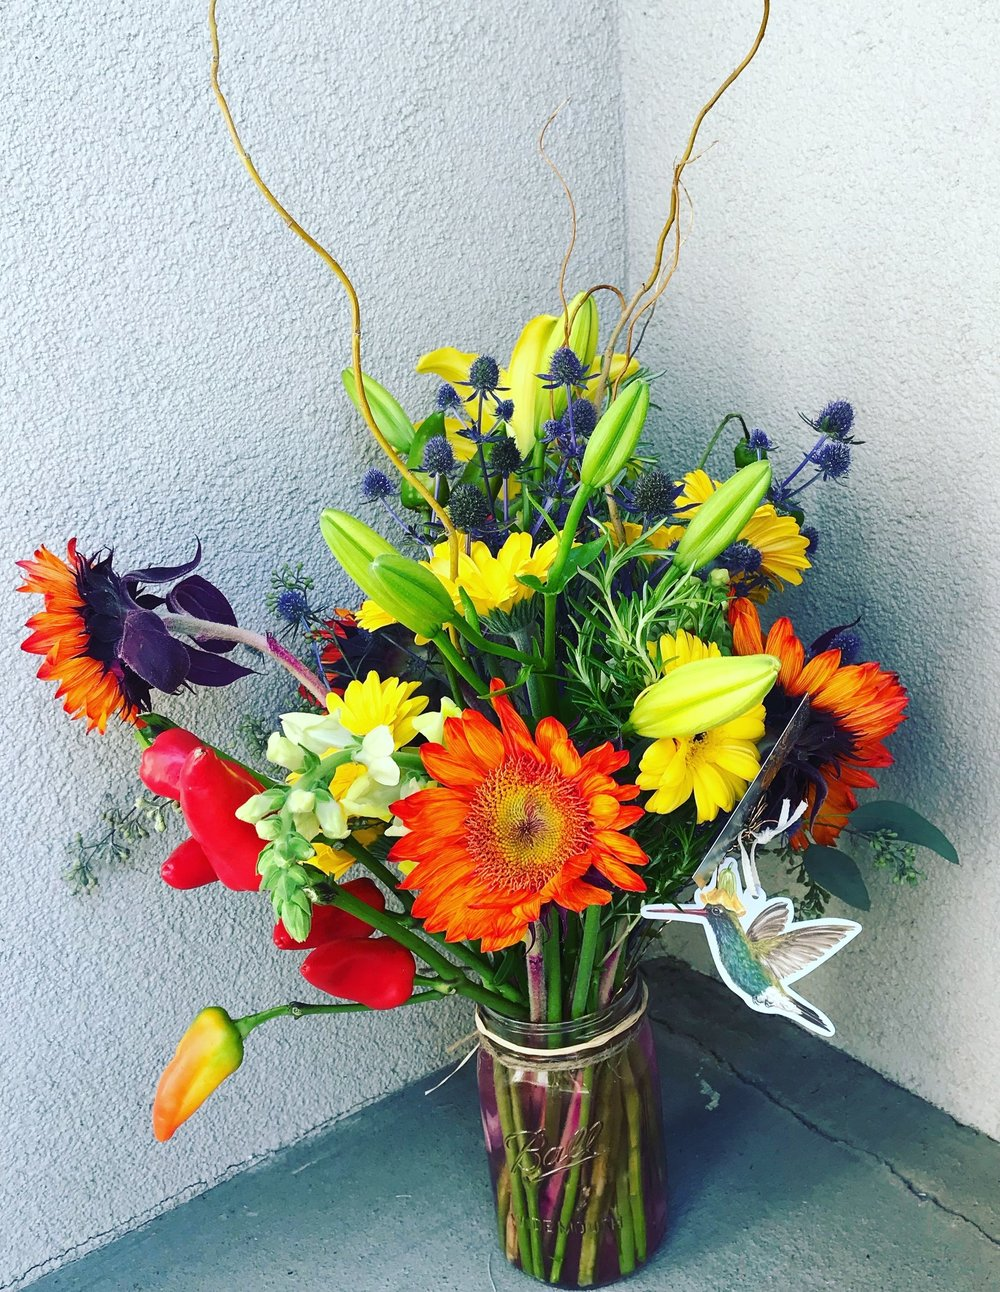 Bend Floral Artistry  - Custom Floral Arrangements for every occasion. Flower Deliveries in Bend, Oregon.